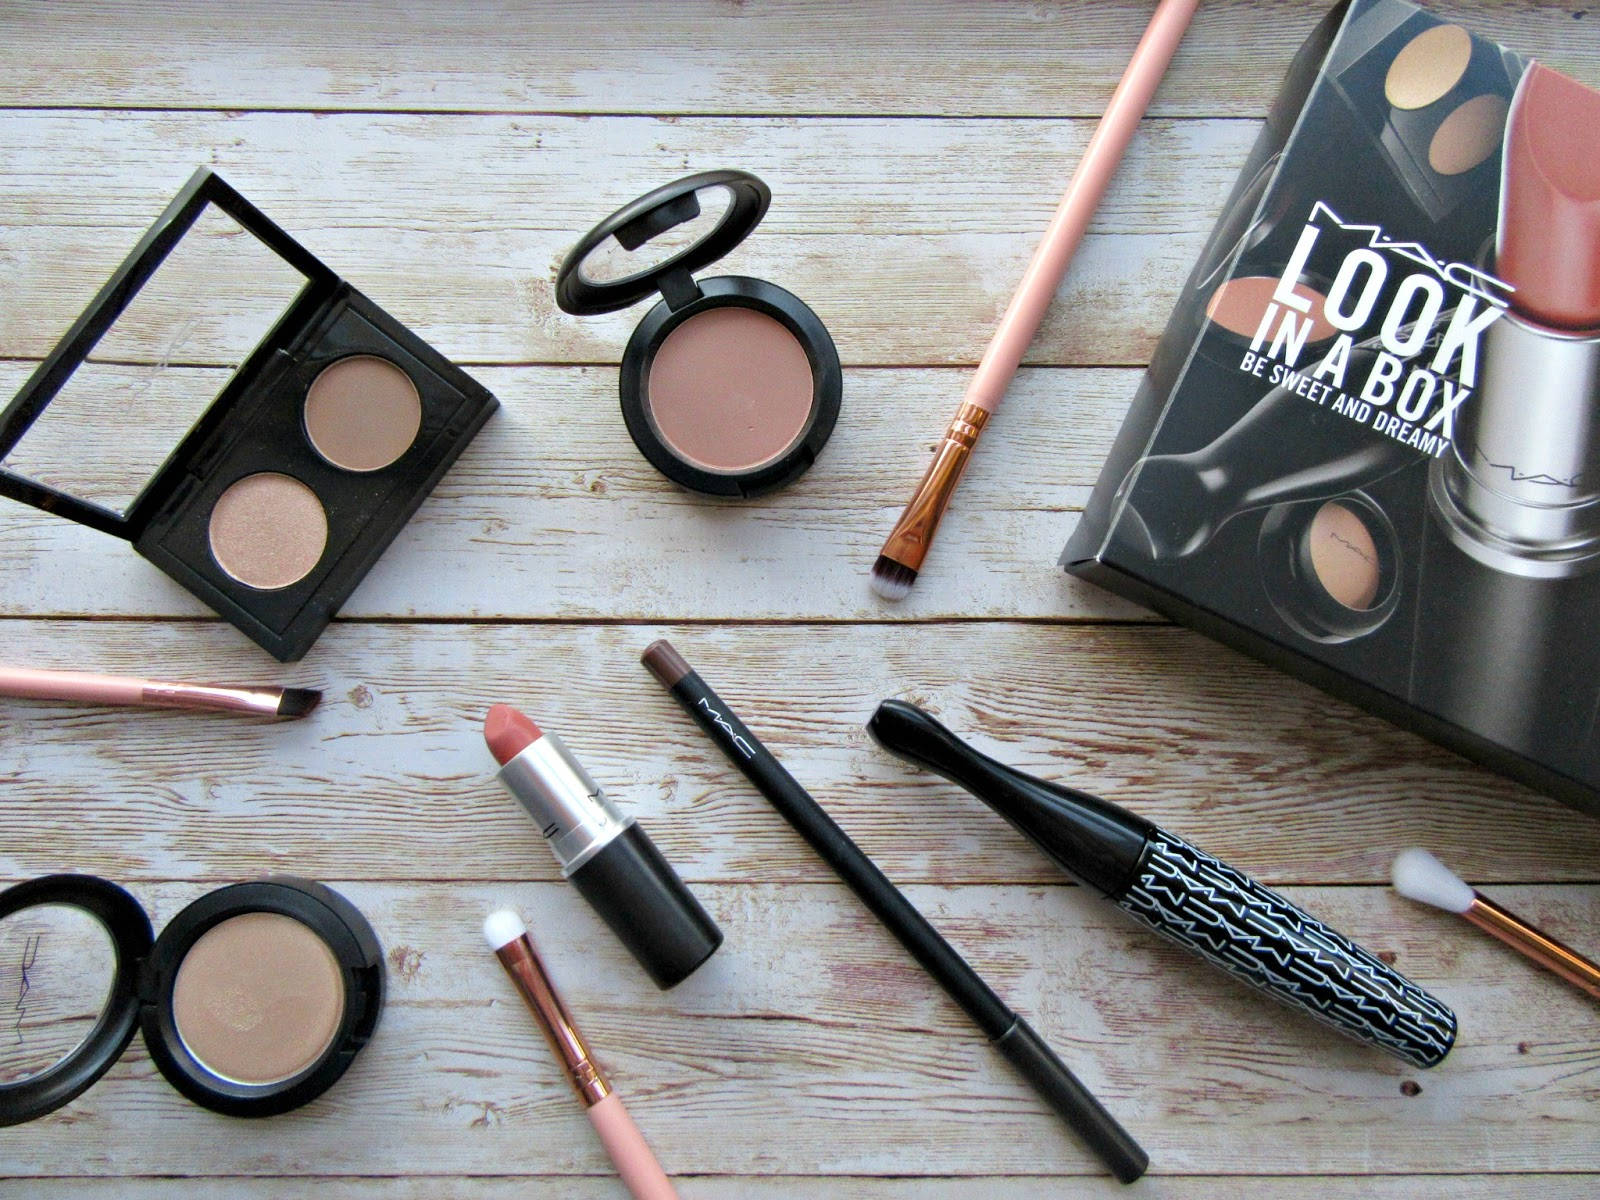 Mac Look In A Box Be Sweet and Dreamy review